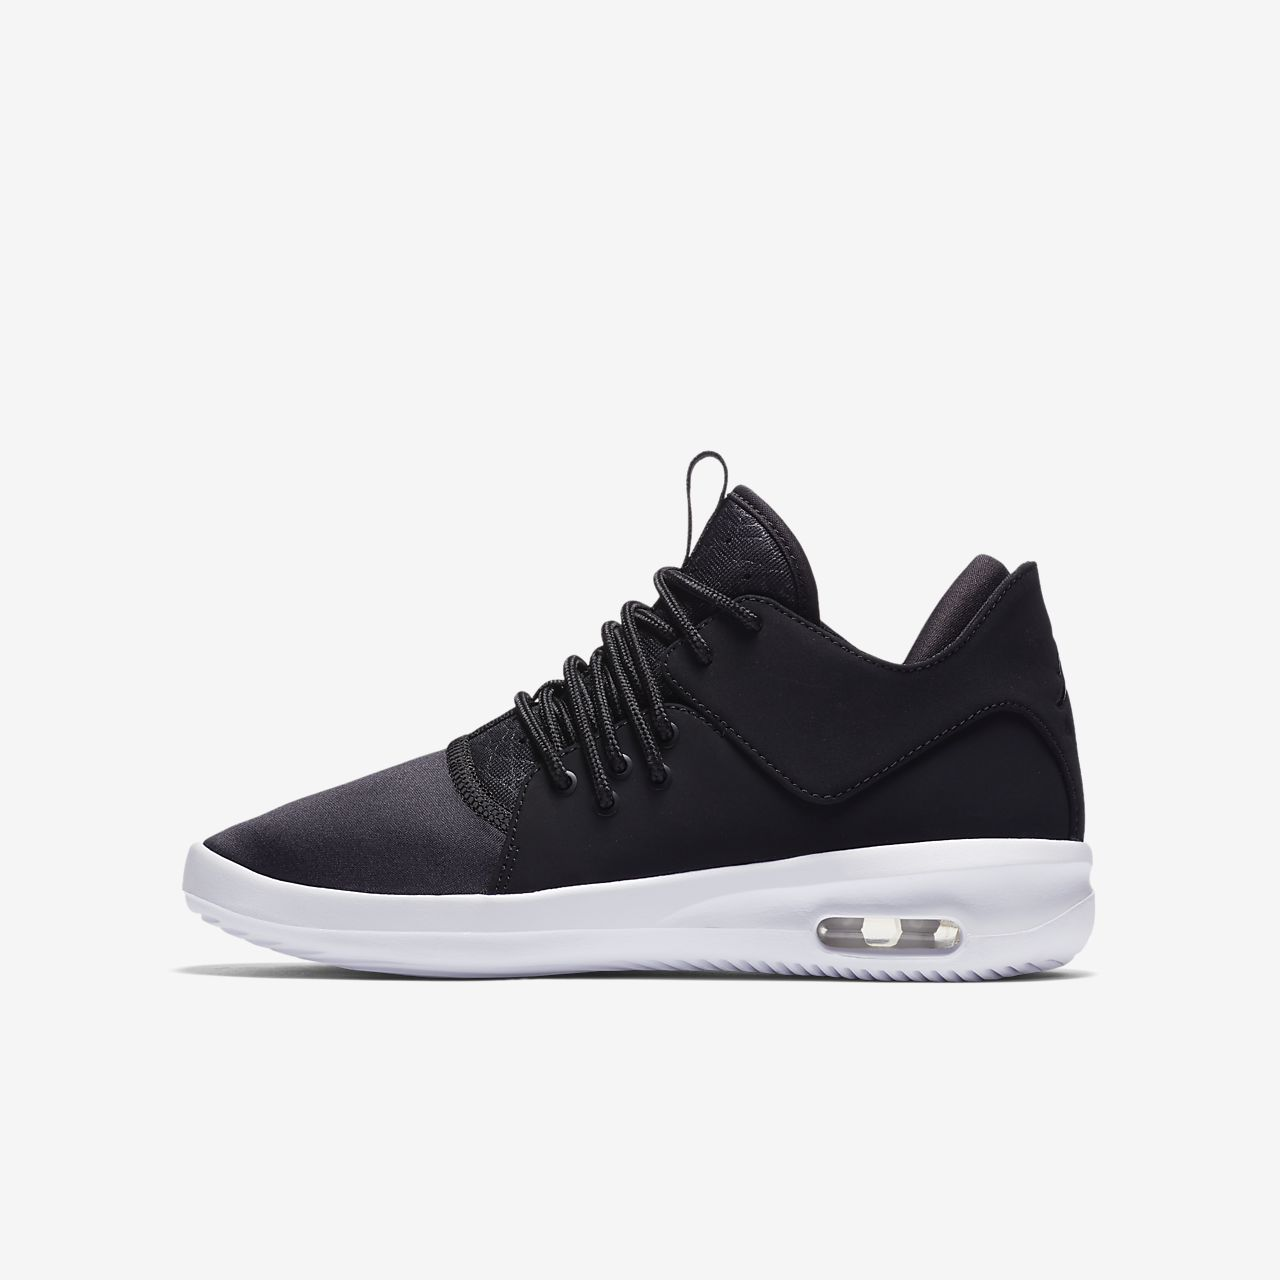 nike air jordan first class